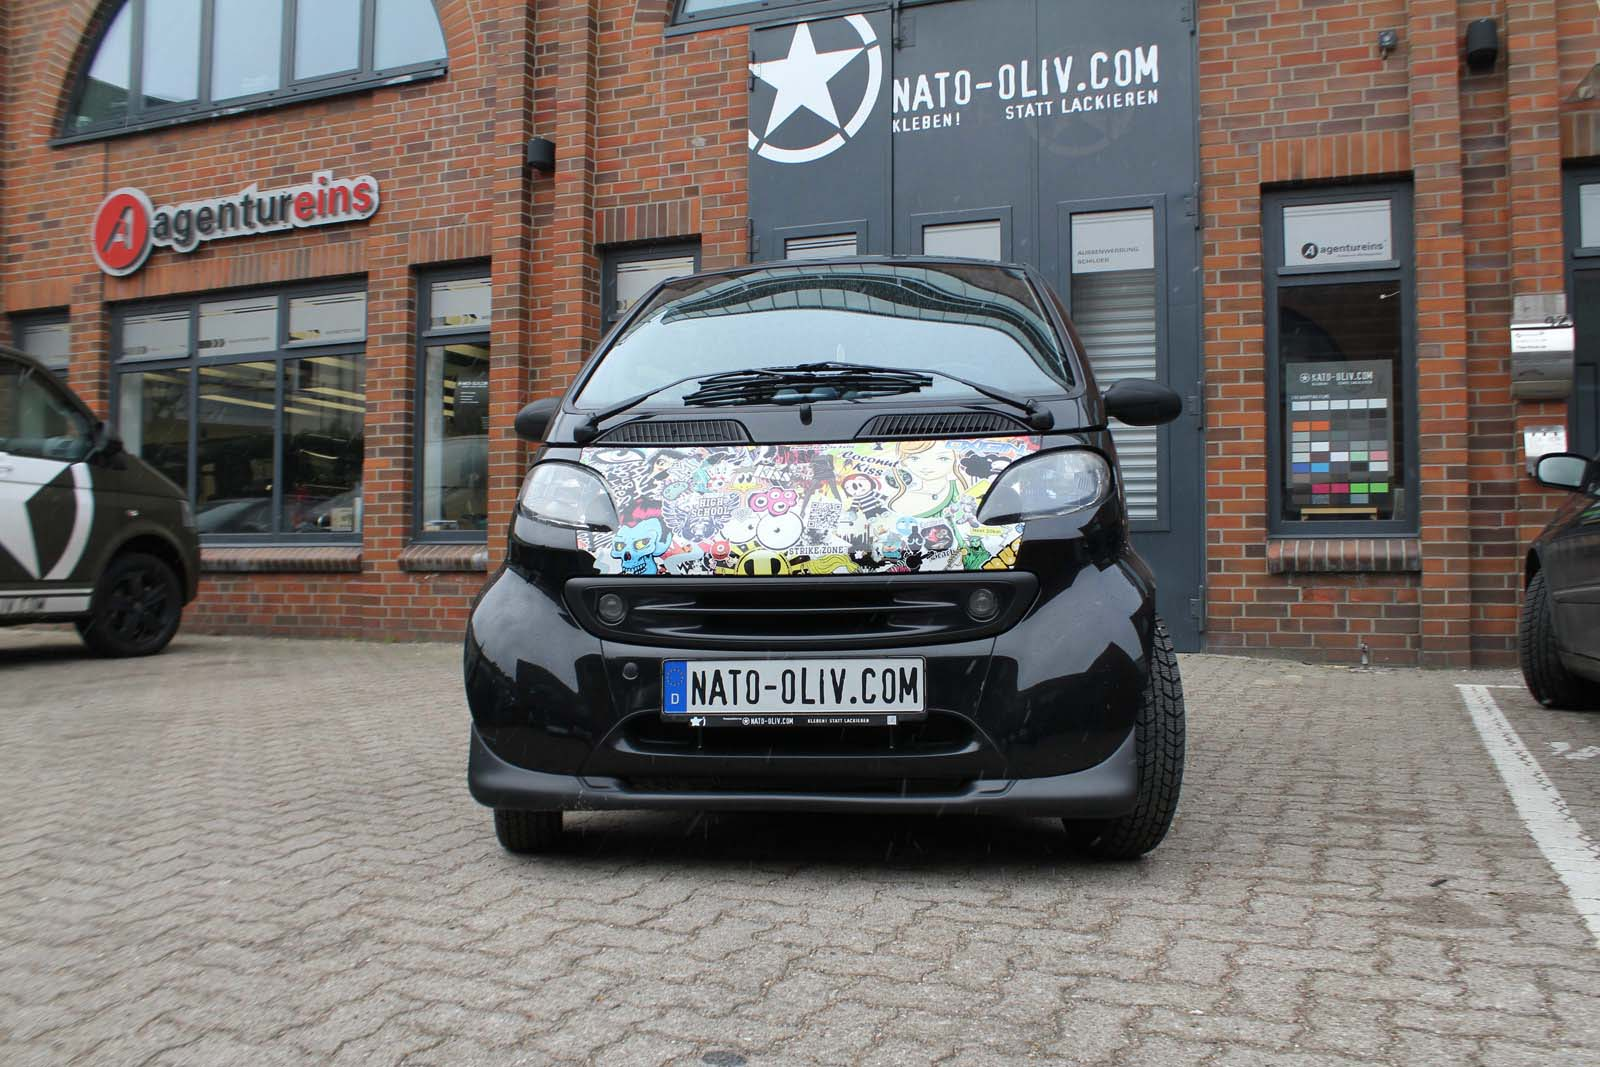 SMART_FORTWO_TEILFOLIERUNG_STICKERBOMBING_DIGITALDRUCK_06